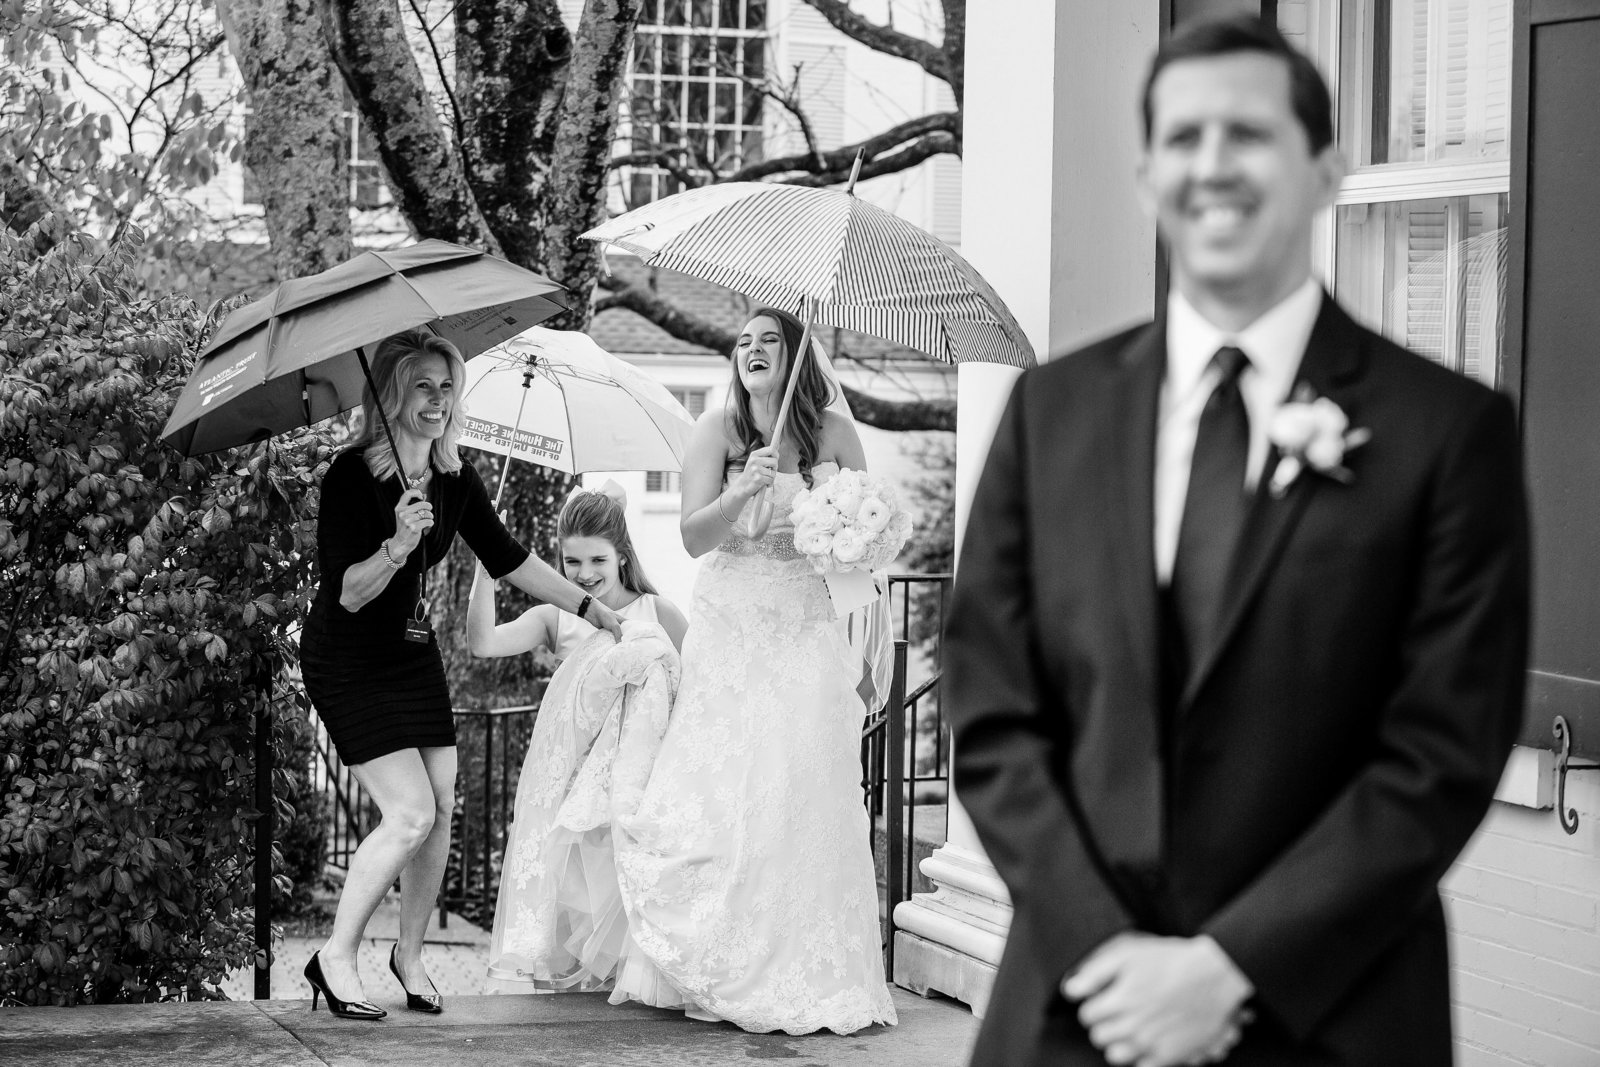 Woodmont-Christian-Church-Wedding-Rainy-Wedding-Day